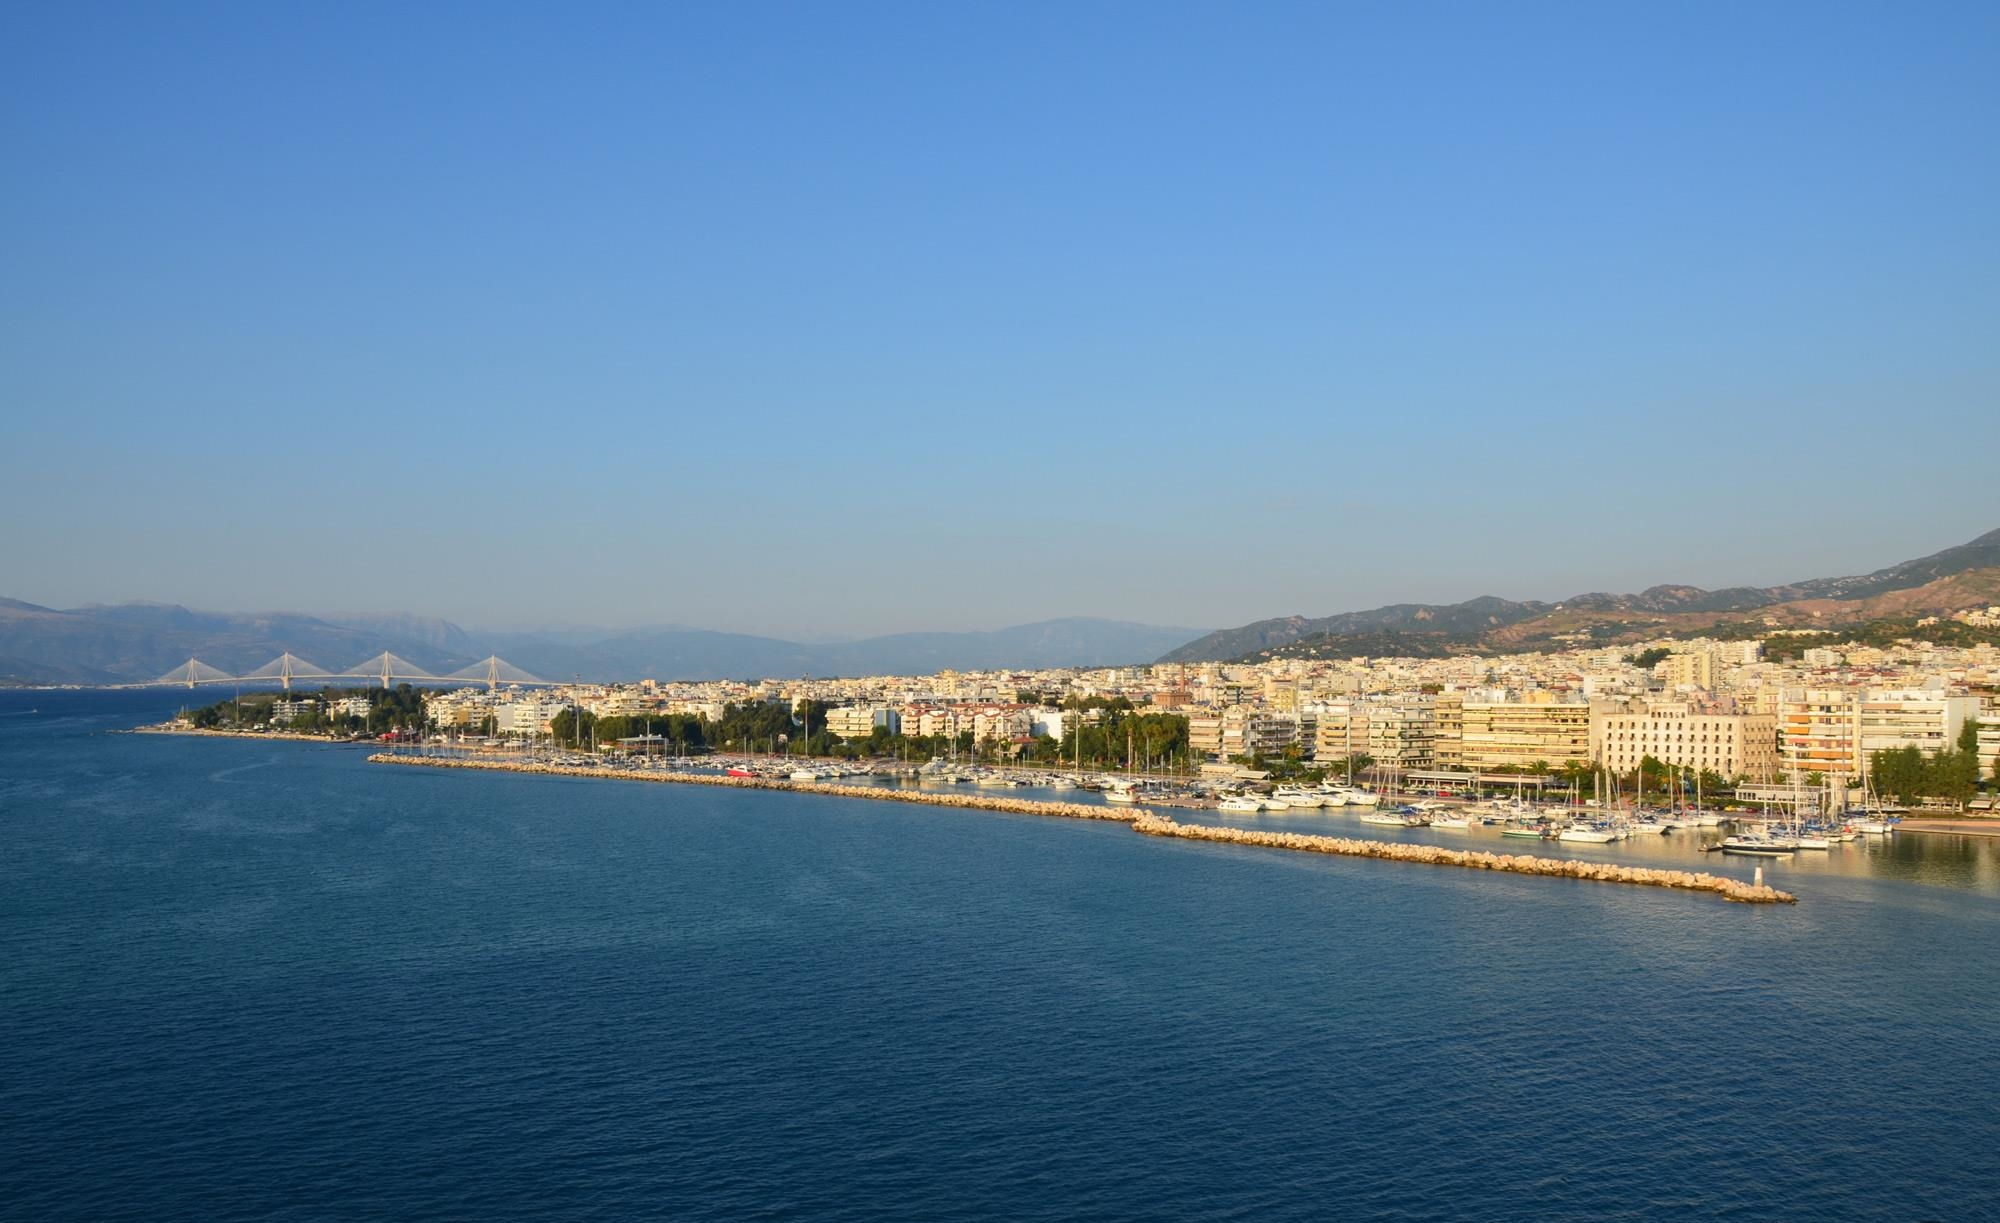 We at Monterrasol Travel welcome you to see Patras during multiday private car tour. Contact us if you would like to customize your tour to Patras.